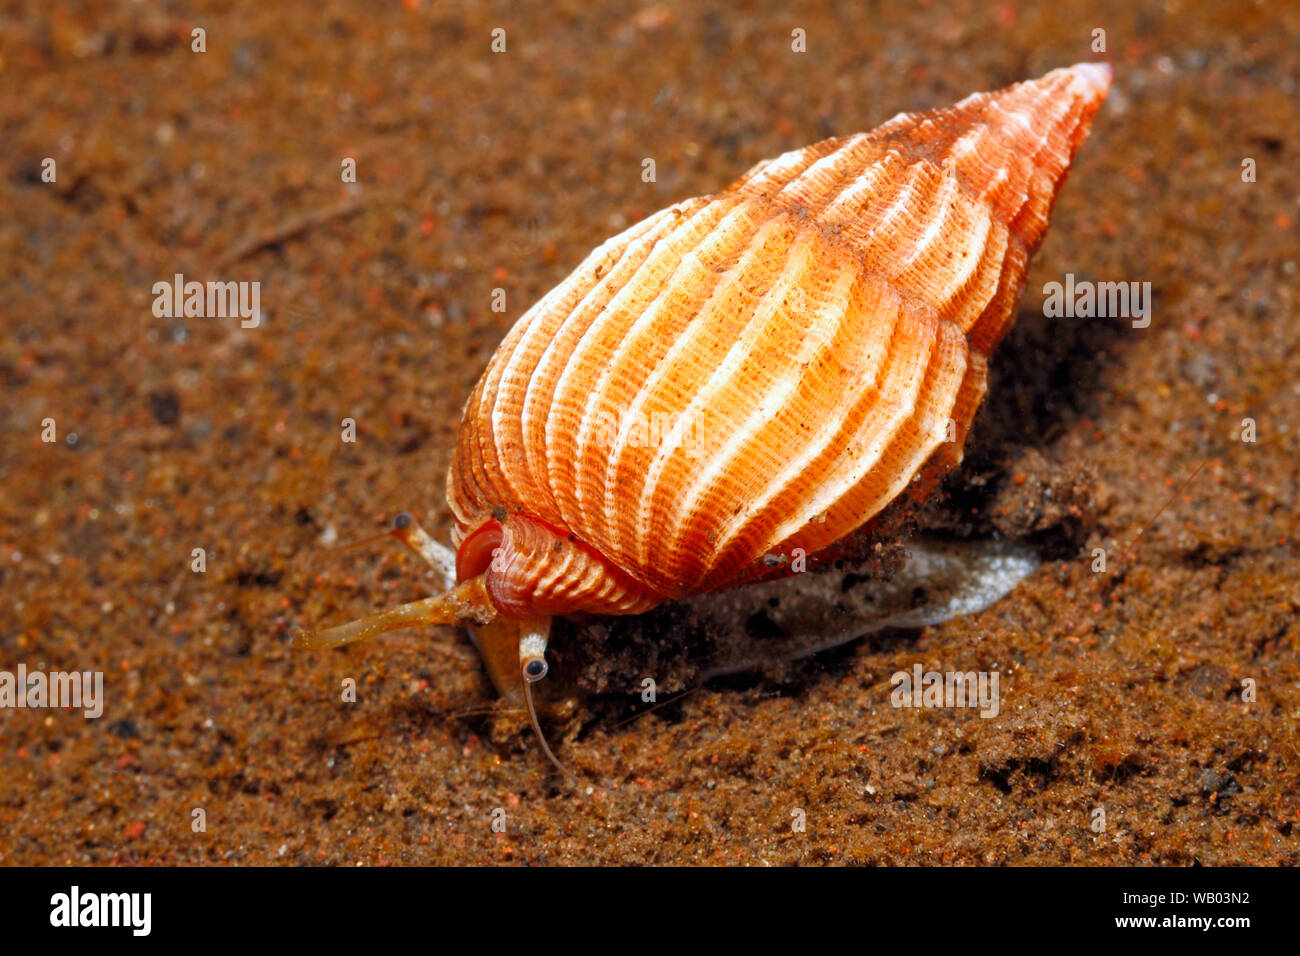 live-sea-snail-shell-phos-textus-crawling-on-sand-underwater-showing-foot-syphon-and-eye-tulamben-bali-indonesia-bali-sea-indian-ocean-WB03N2.jpg